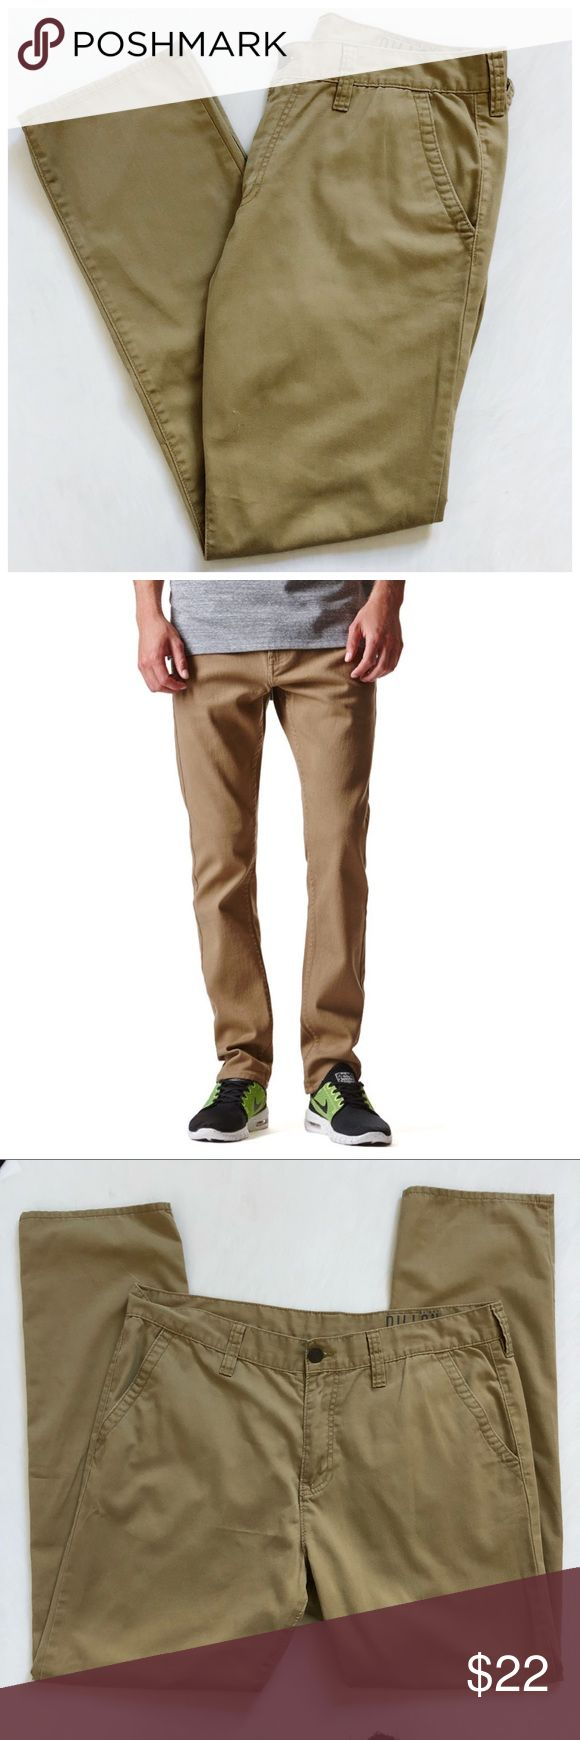 "Bullhead Dillon Skinny Khaki Pants Pacsun 36x32 Bullhead Dillon Skinny Khaki Pants from PacSun. Chino khaki pants in a skinny cut, front and back slash pockets. 69% cotton/41% polyester. Good used condition. No rips stains or holes. Waist 18"" (flat) Rise 12"" Inseam 31"". Photos are best descriptors. Perfect for work or play Bullhead Pants Chinos & Khakis"